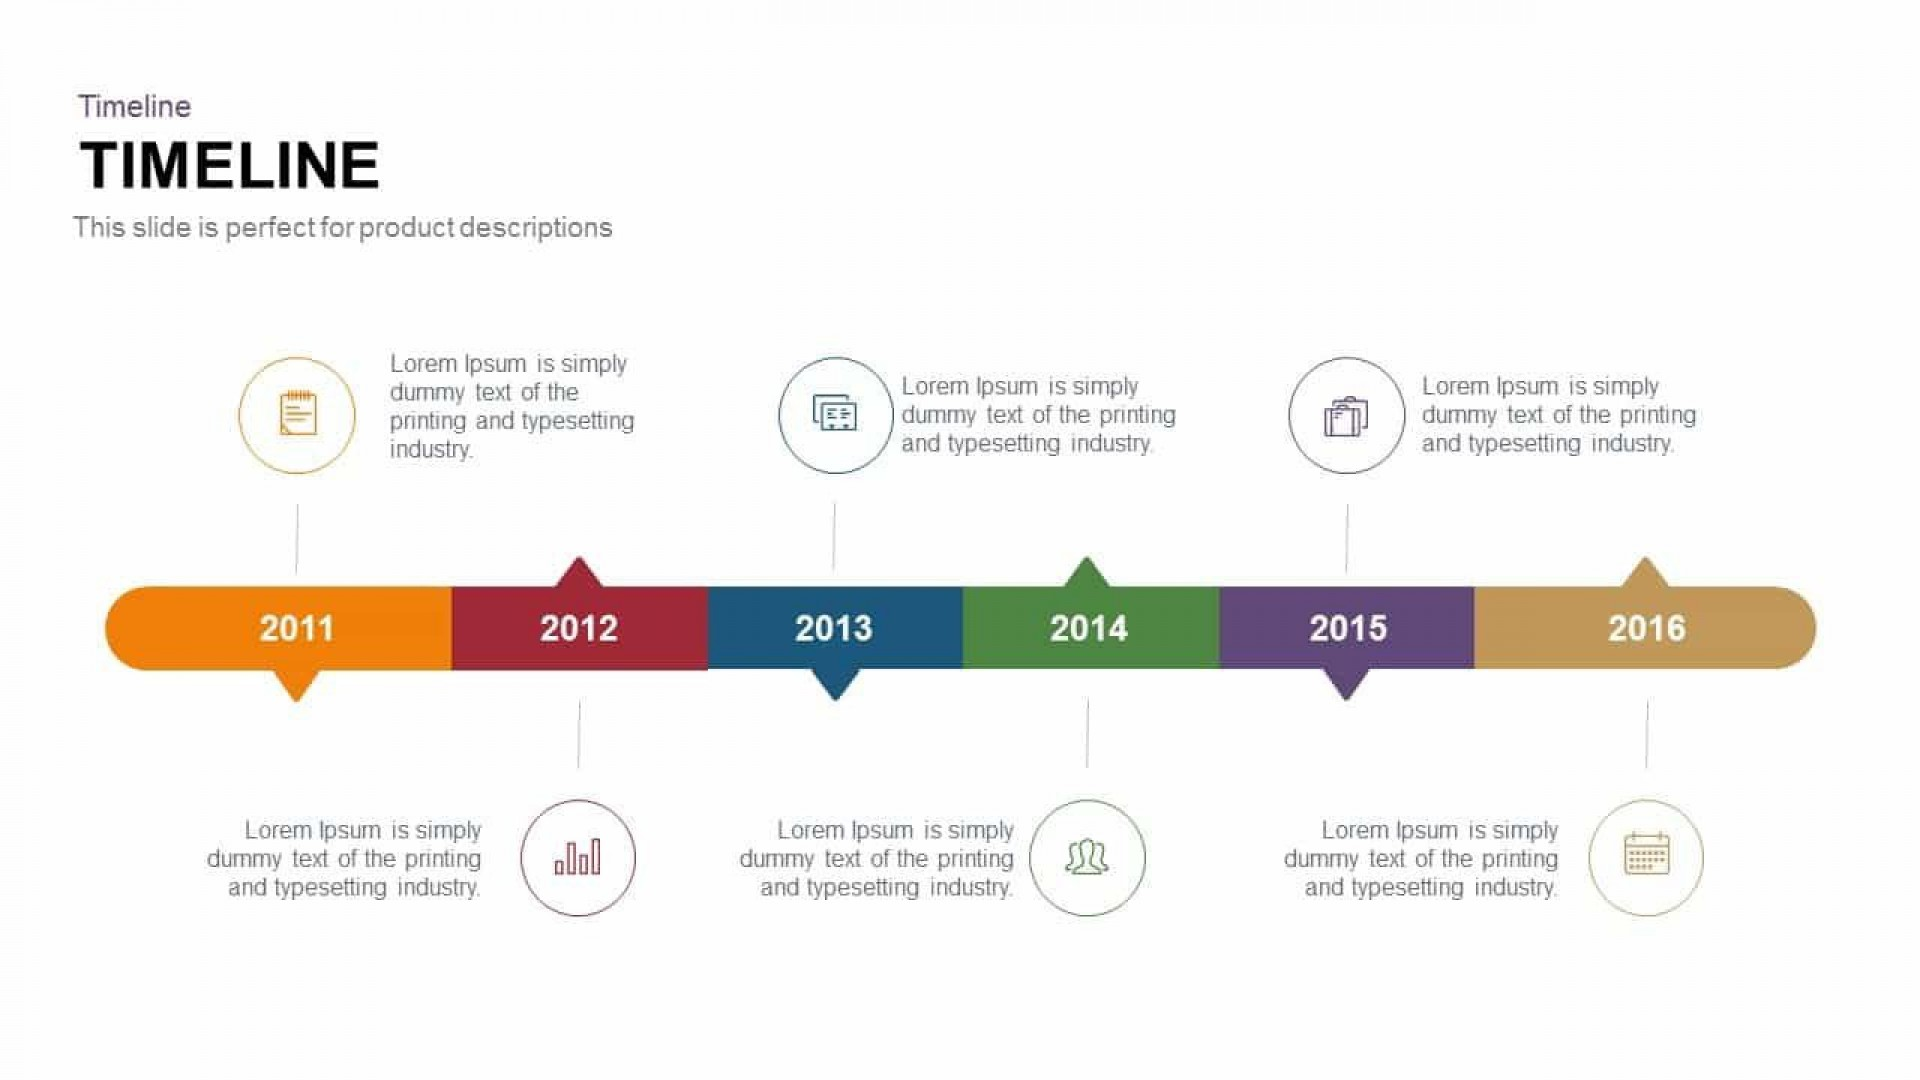 008 Wonderful Timeline Template For Powerpoint Photo  Presentation Project Management Mac1920